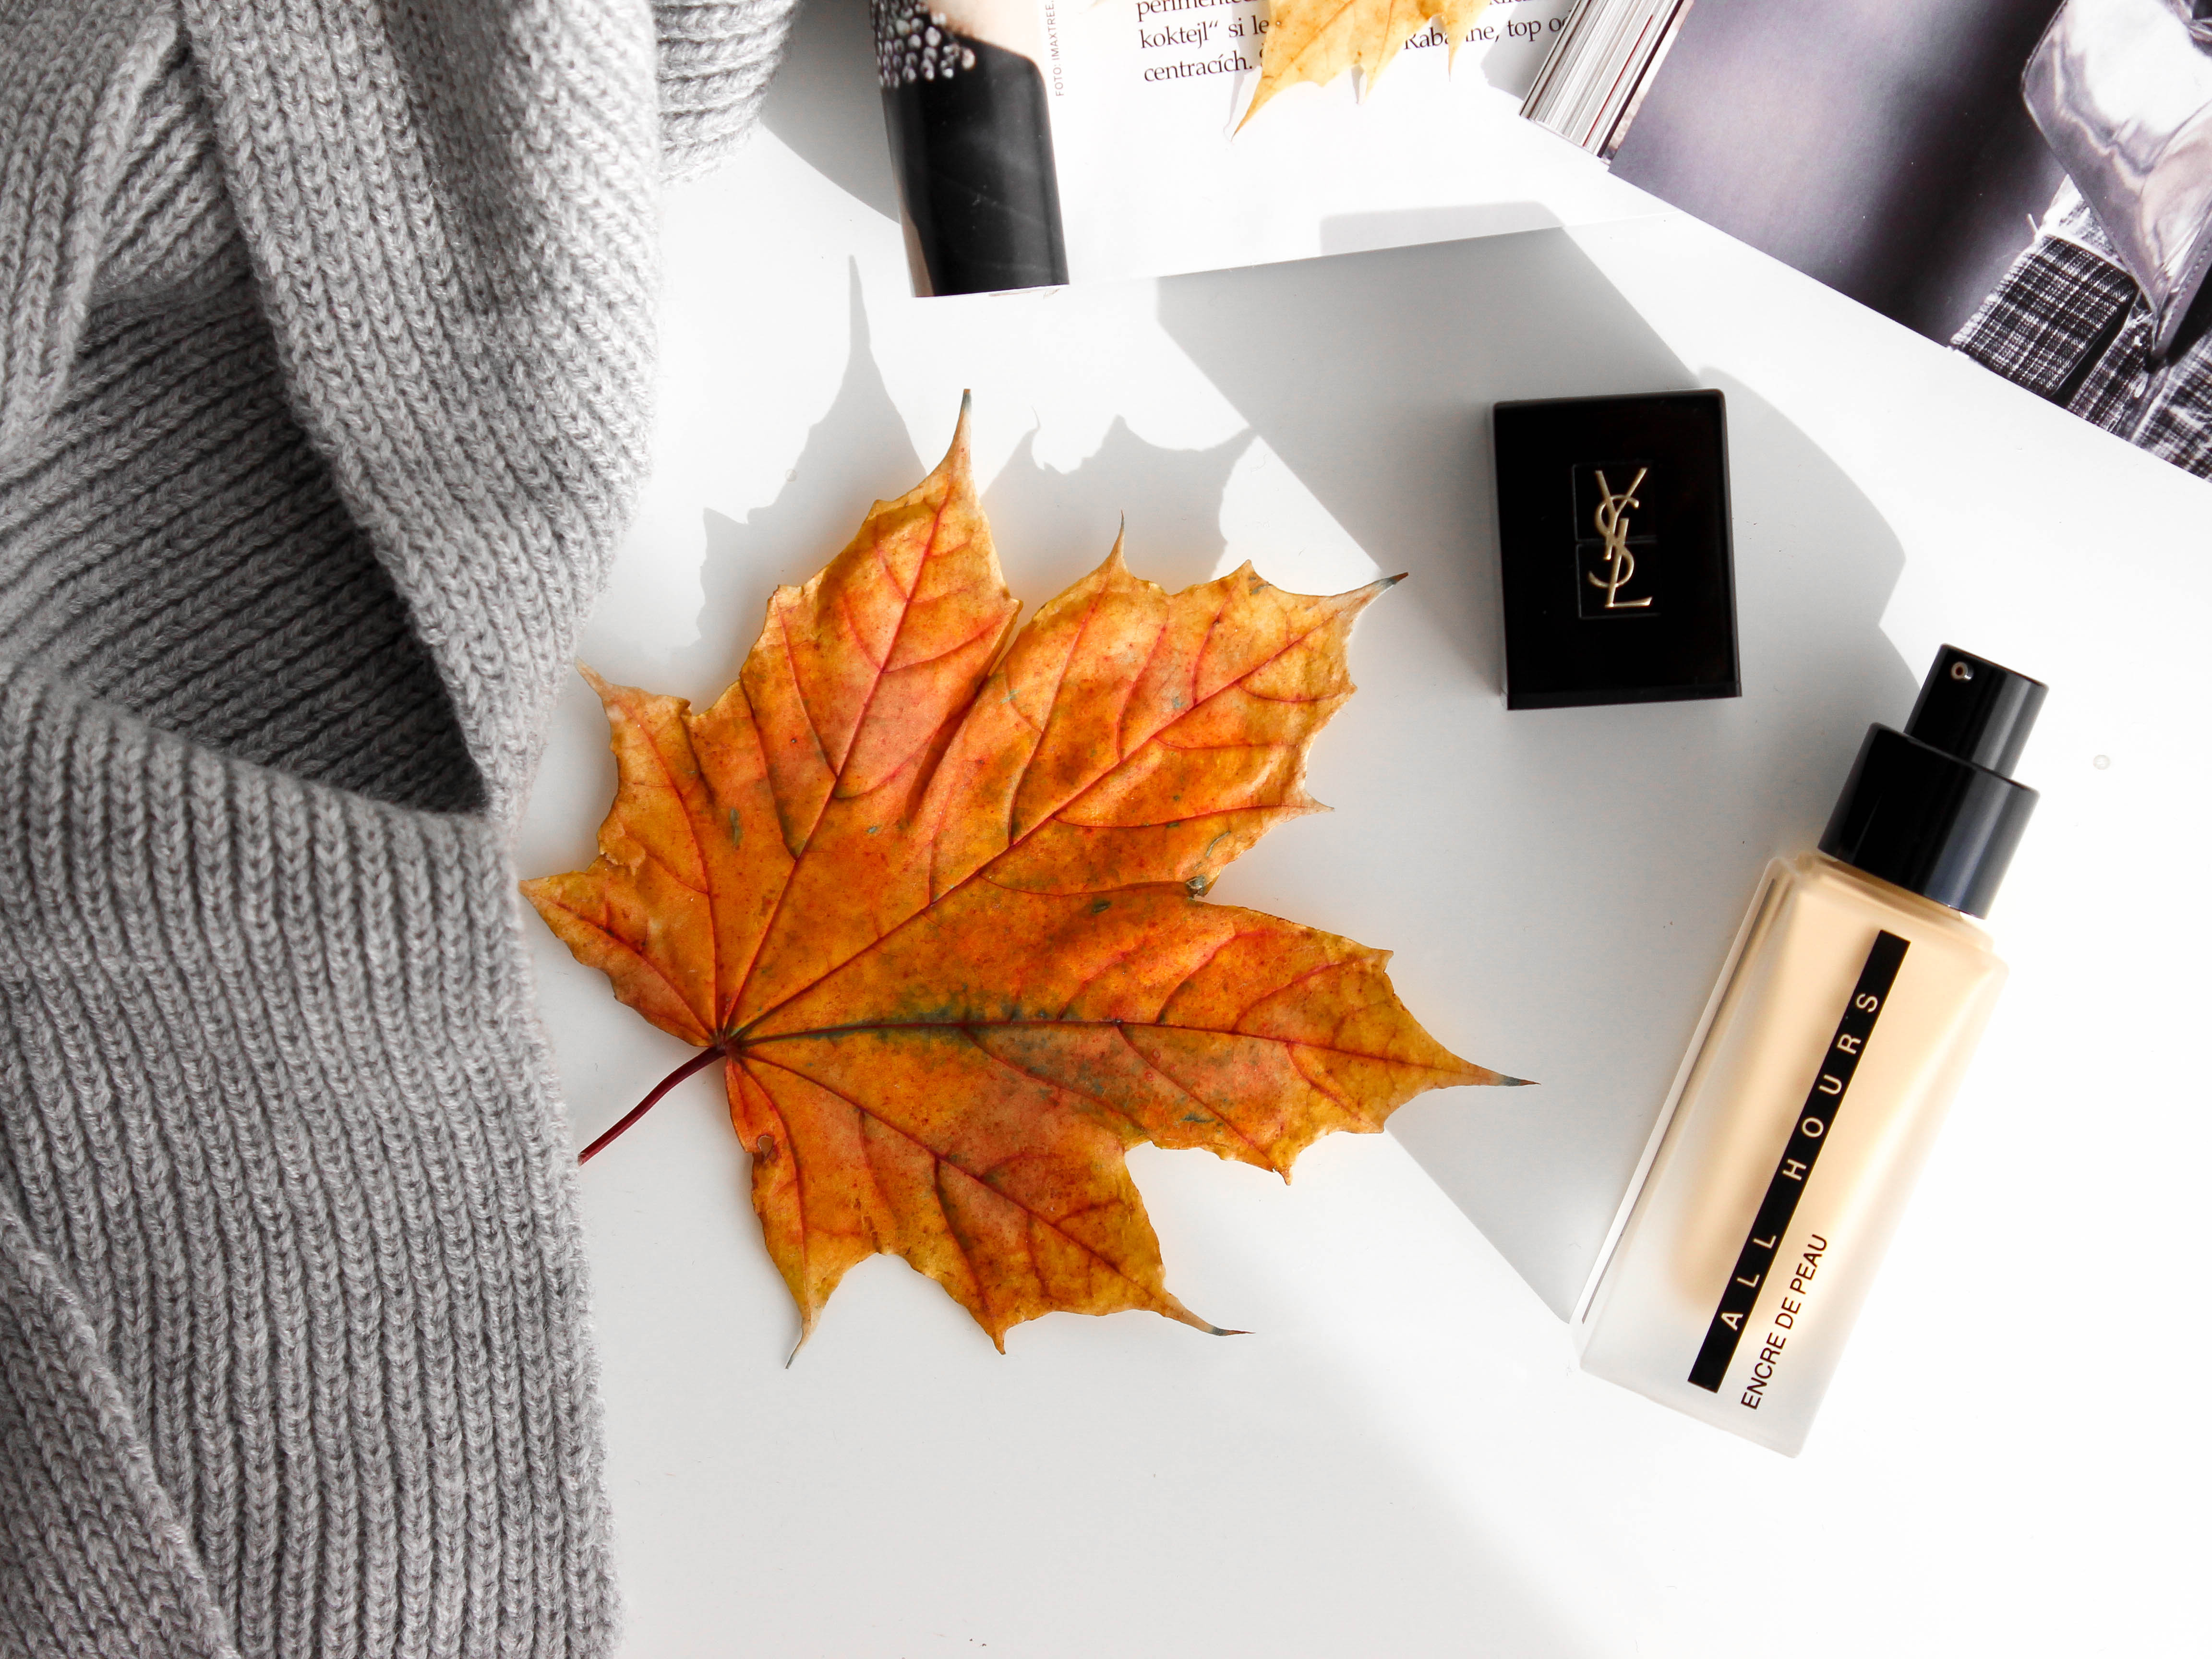 ysl all hours makeup recenze